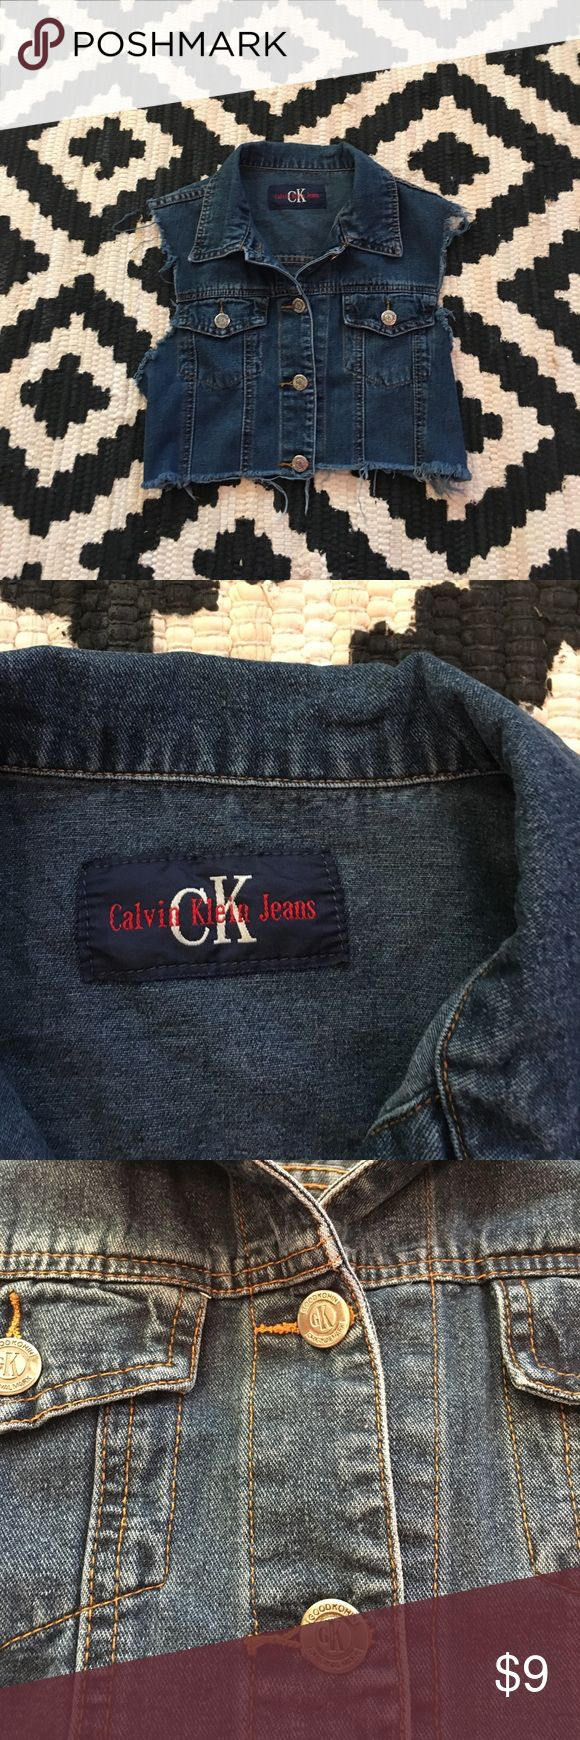 Calvin Klein jean vest Calvin Klein jean vest, good condition, Size Small, tag missing. Calvin Klein Jeans Jackets & Coats Vests